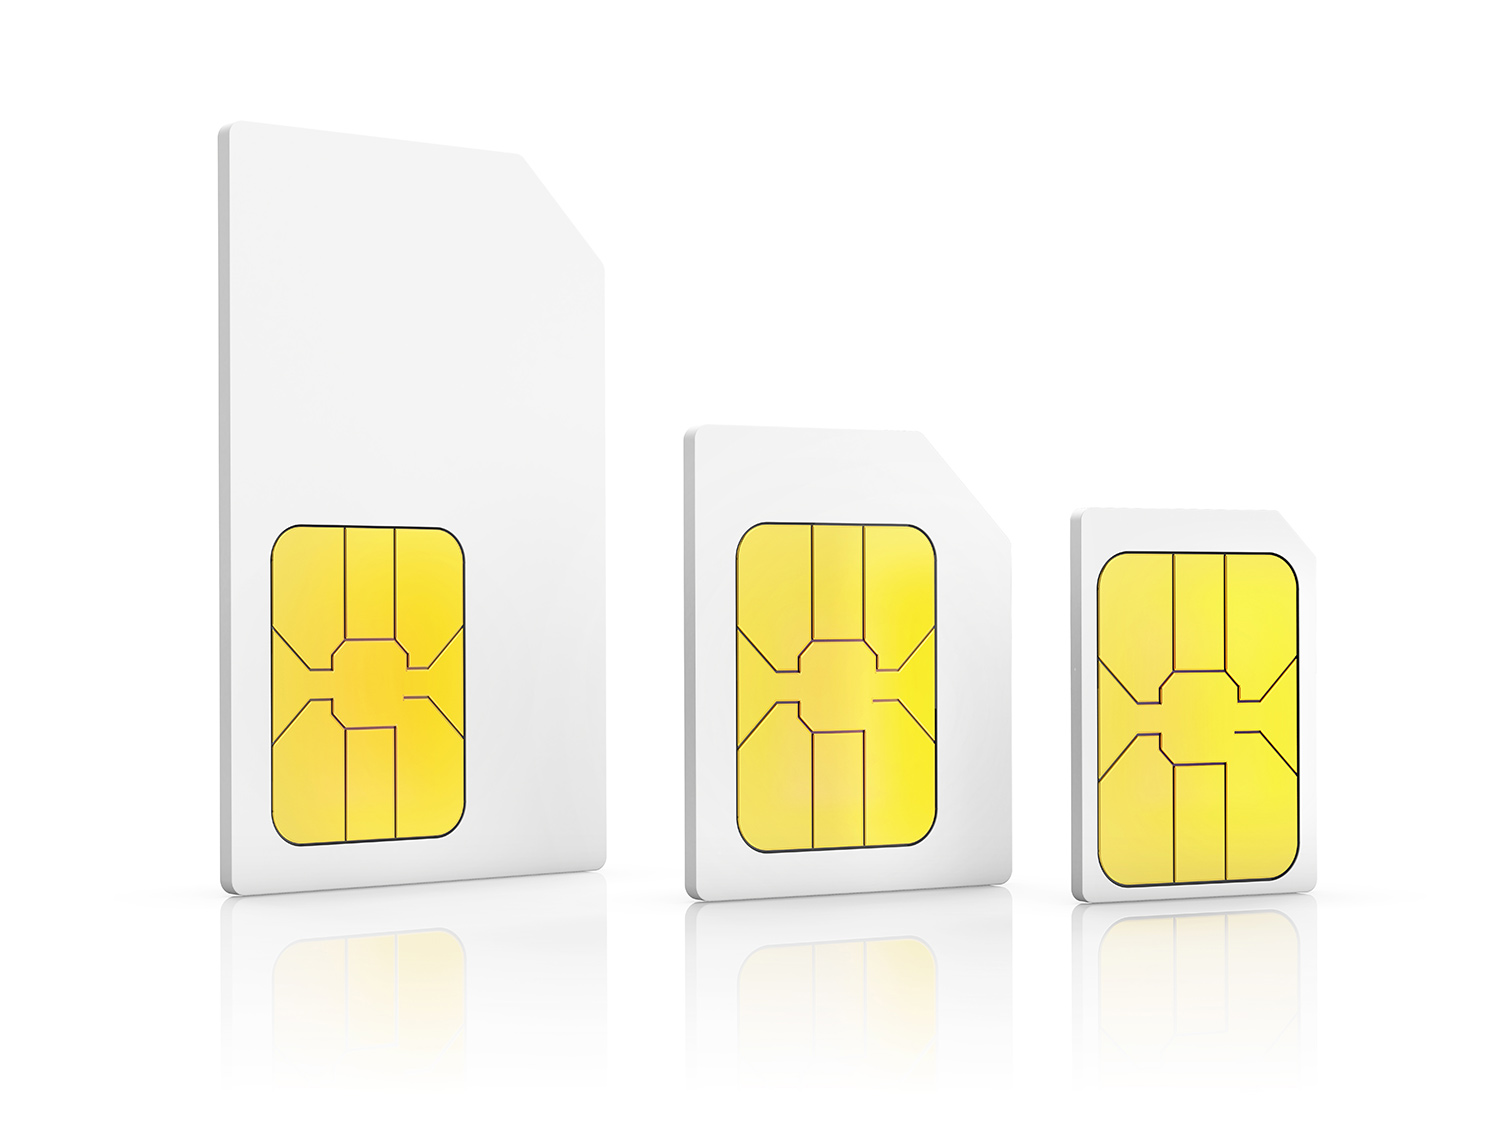 IC Mobile 4G SIM Card